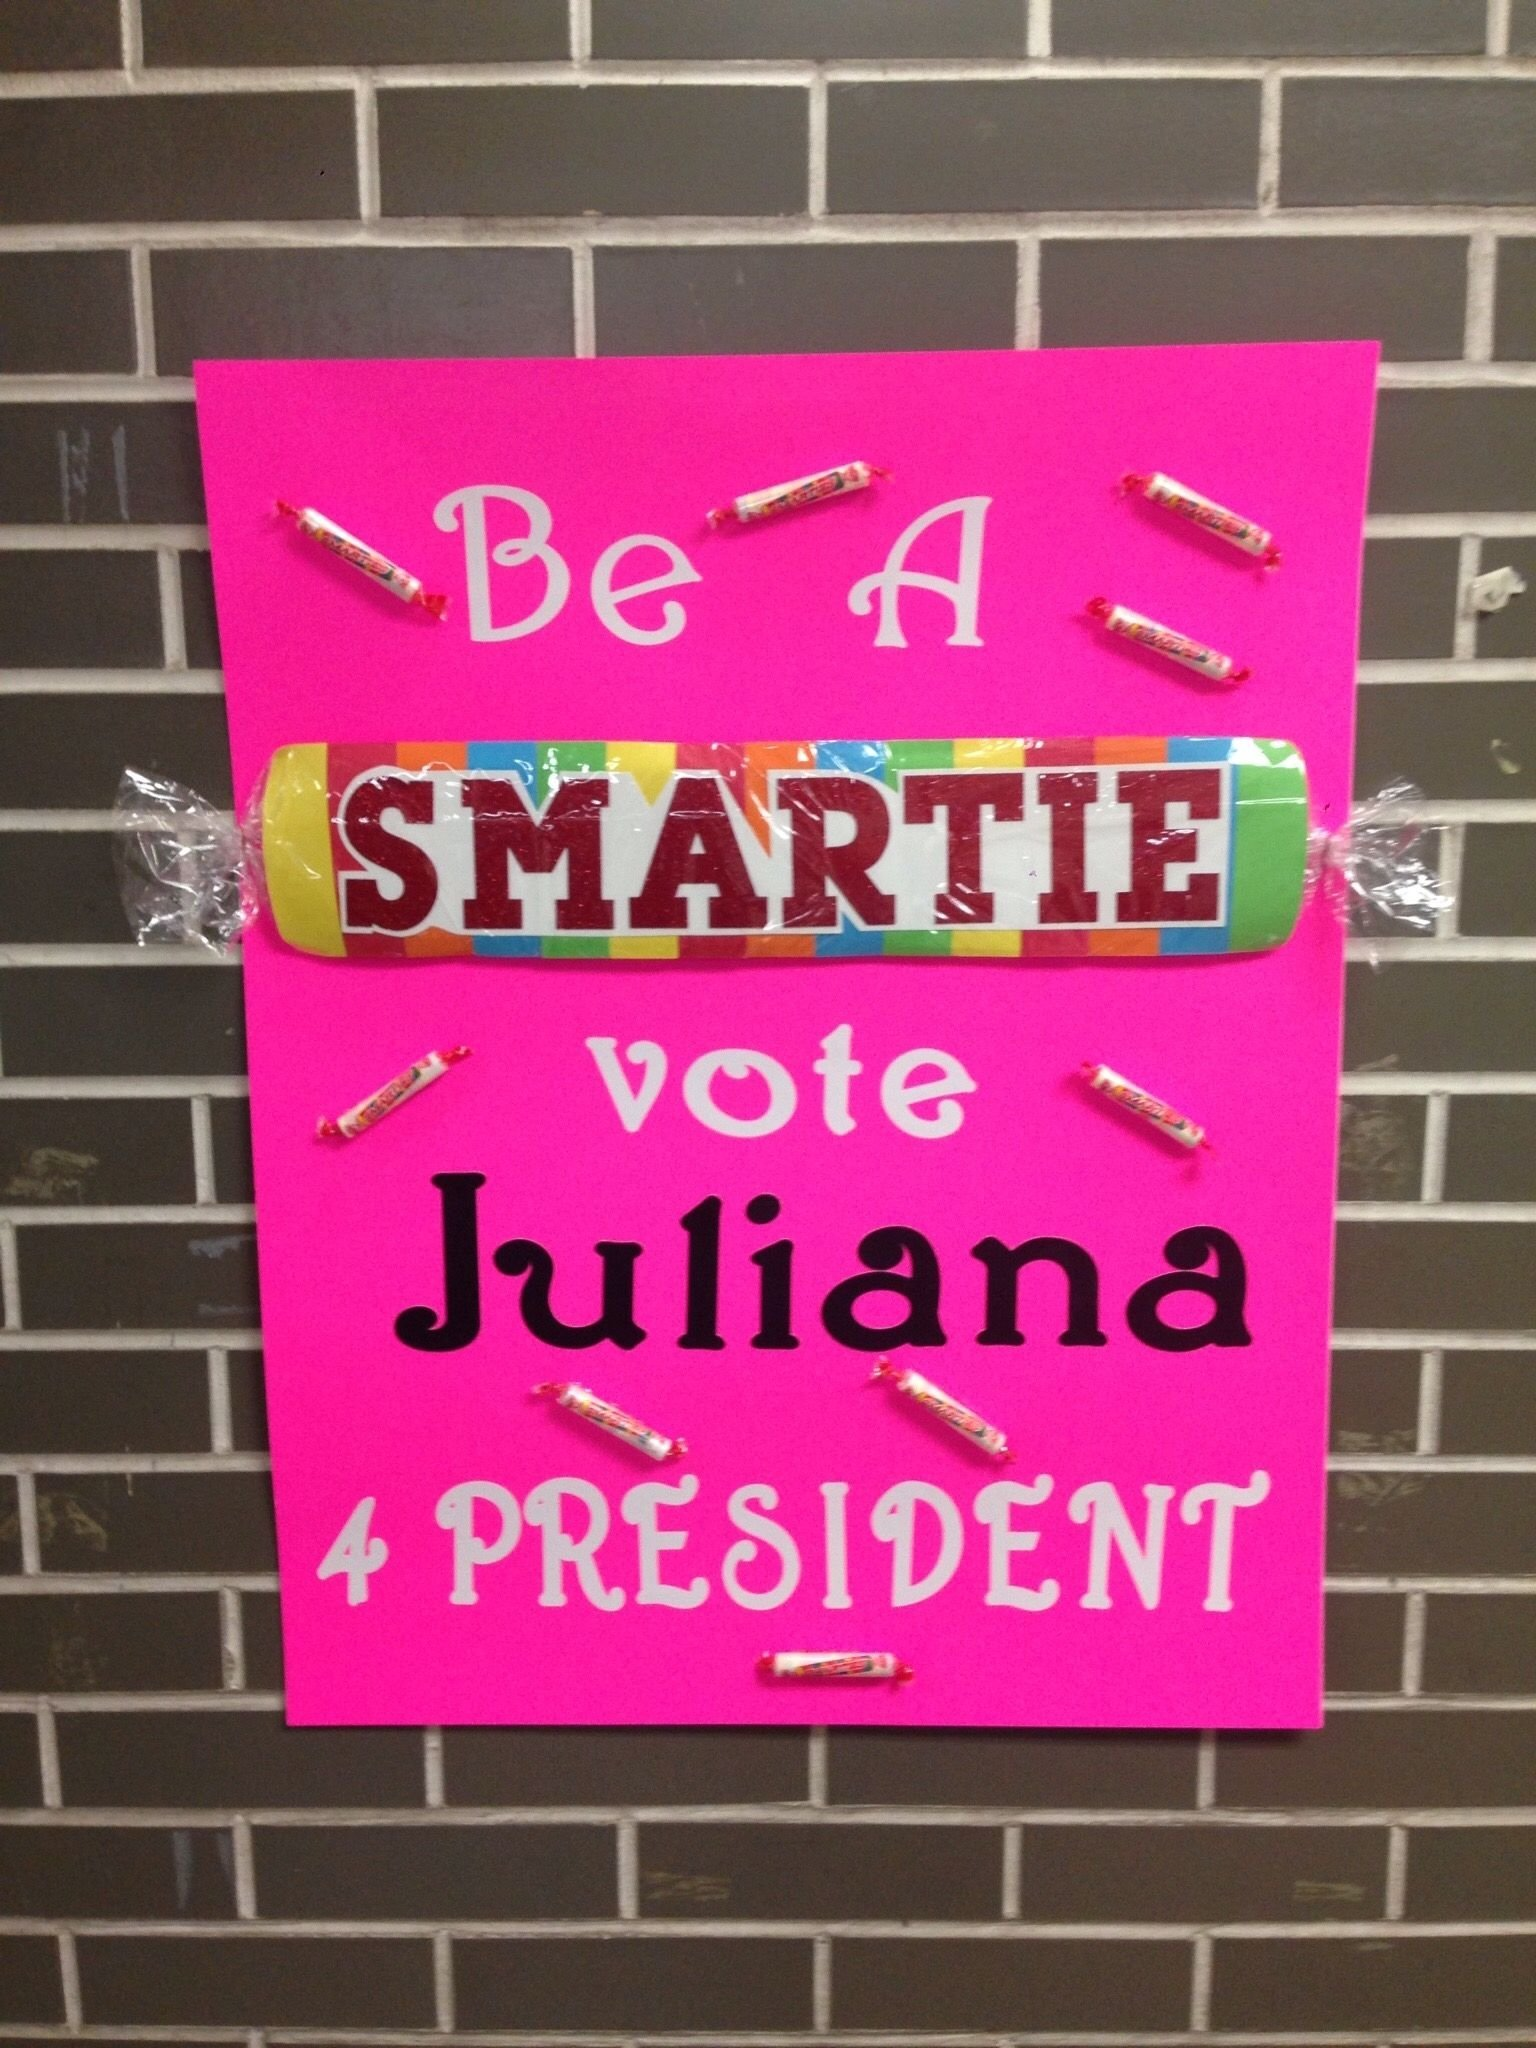 10 Awesome Student Council Campaign Poster Ideas student council election poster juliana pinterest students 6 2021